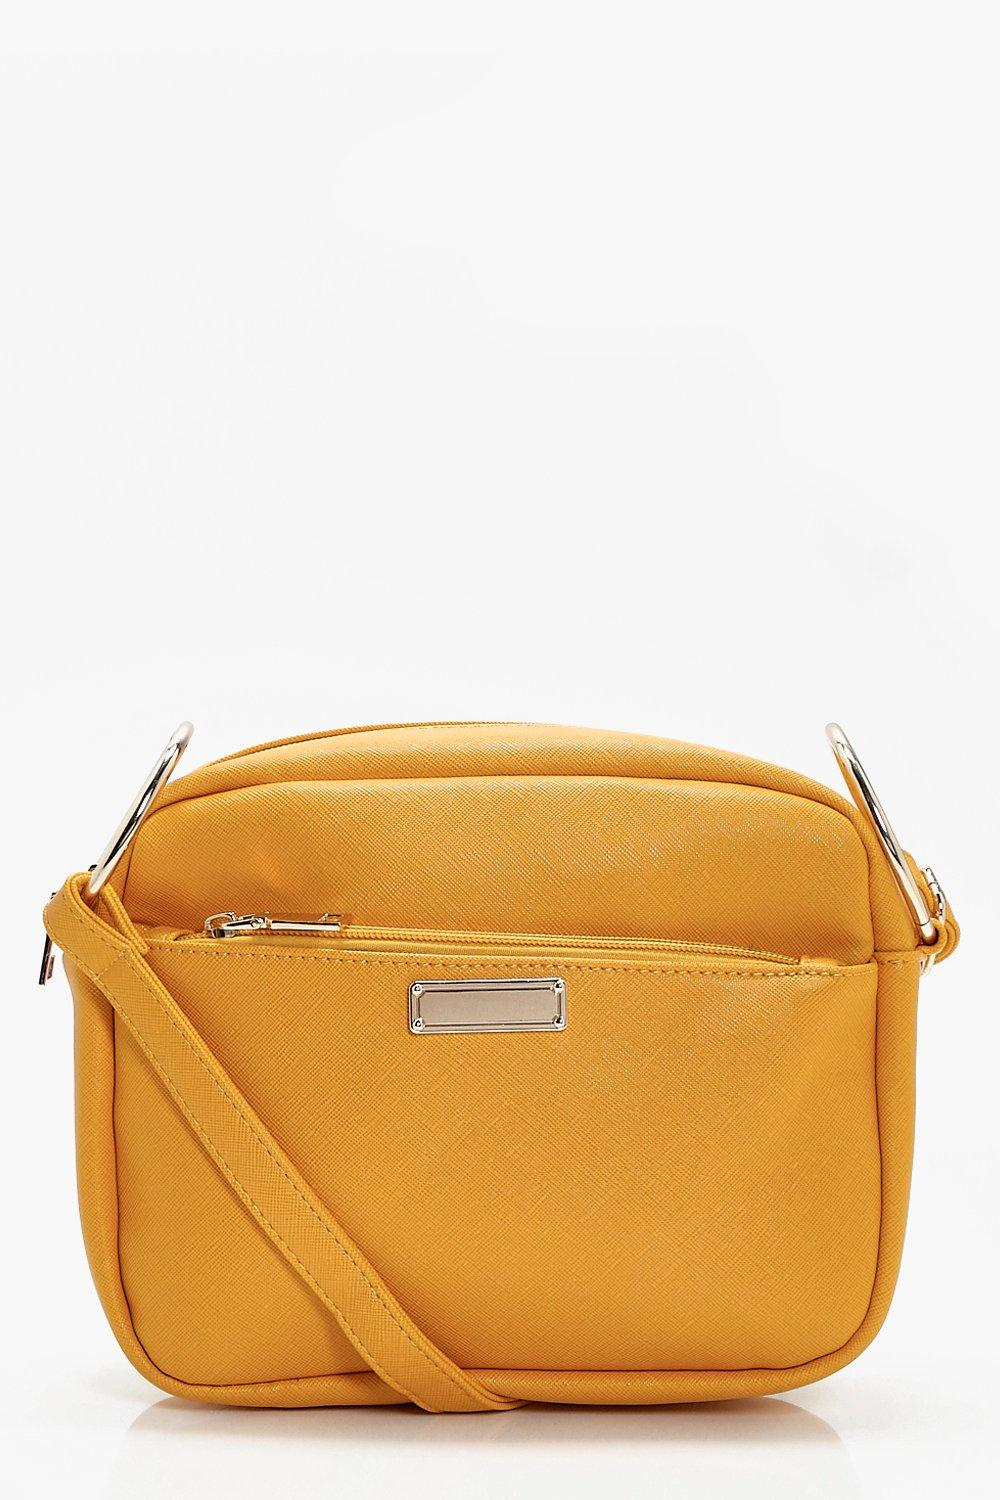 Crosshatch Camera Bag - mustard - Ava Crosshatch C